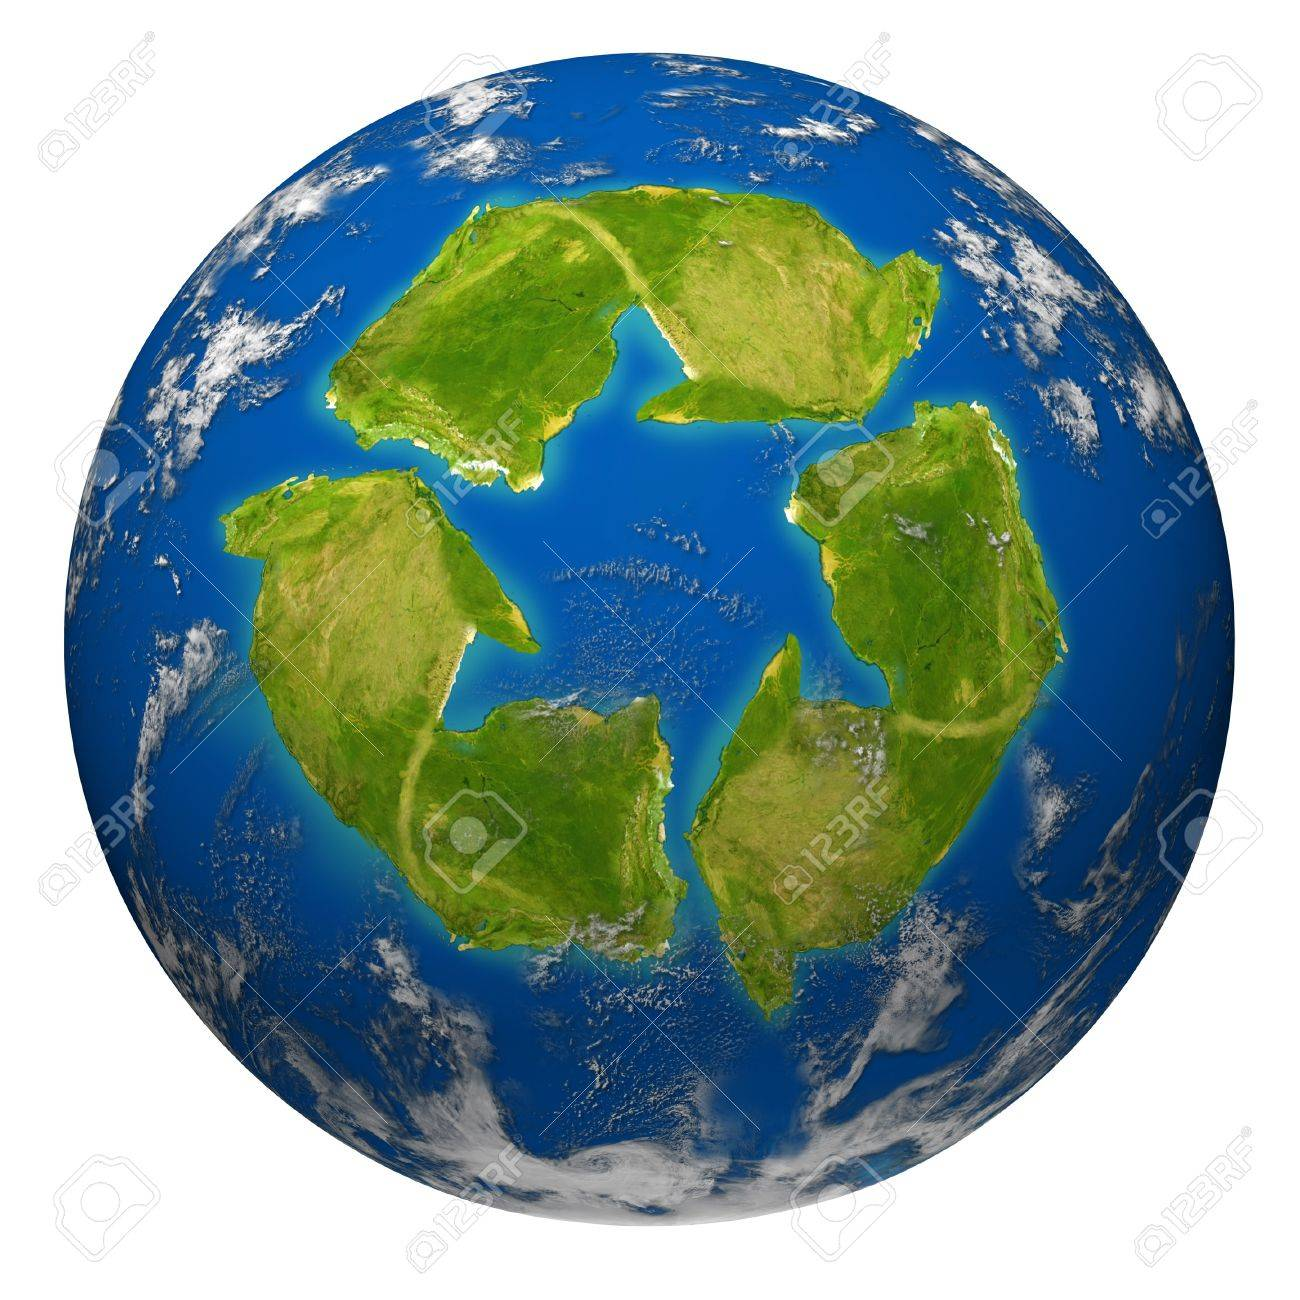 Green Earth Environment Symbol Represented By The Planet With